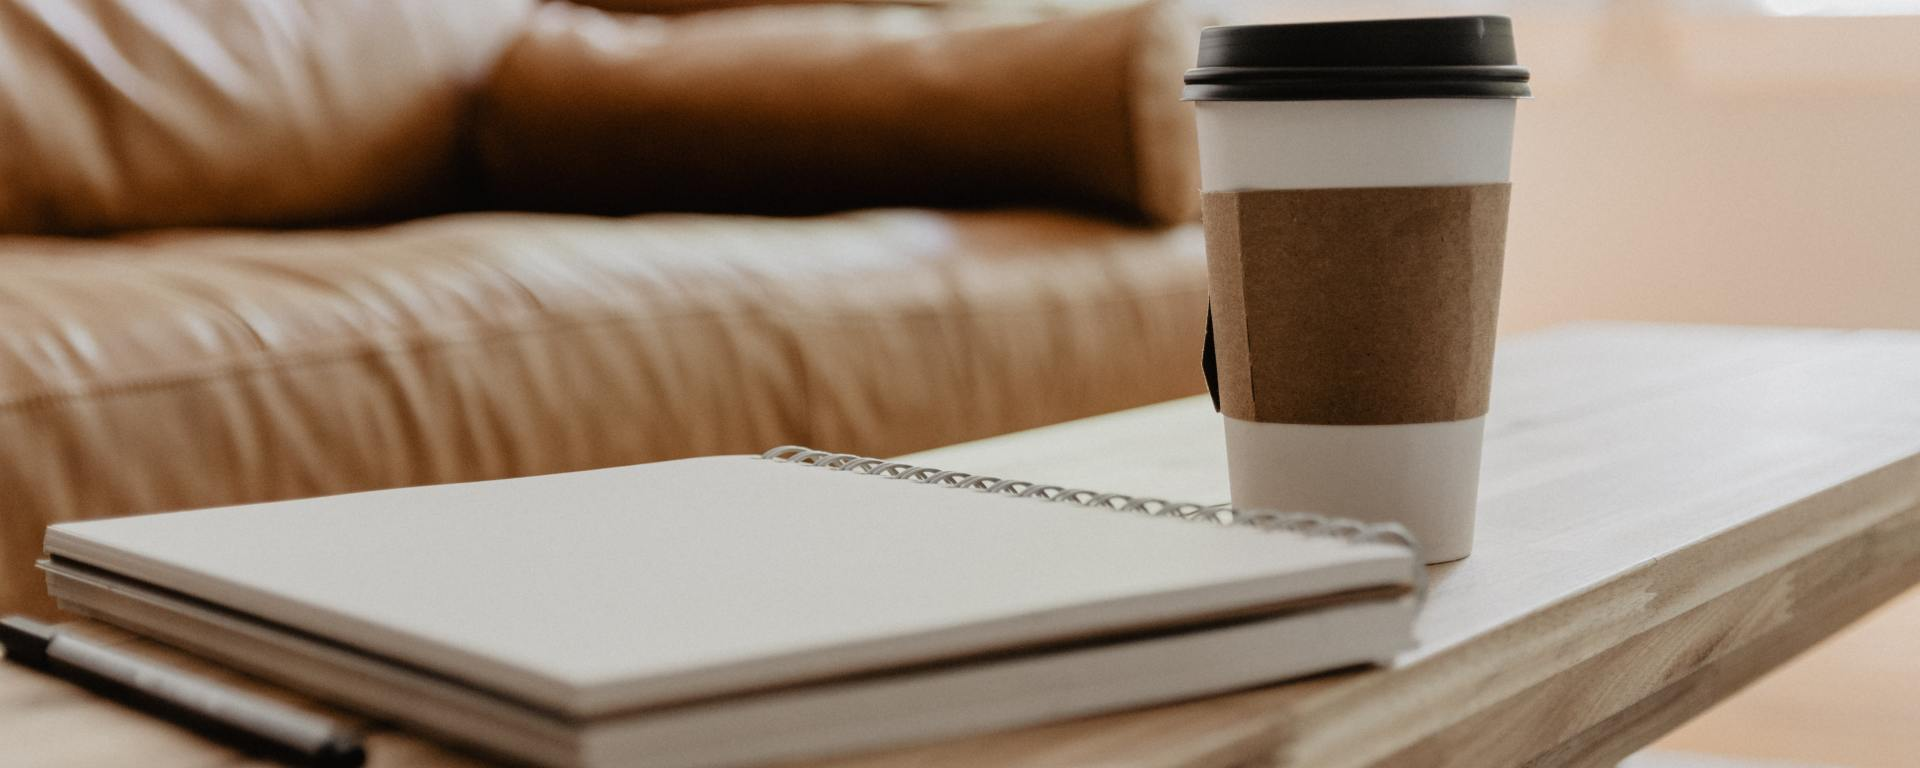 An image of a notebook and paper coffee cup on top of a wooden table.